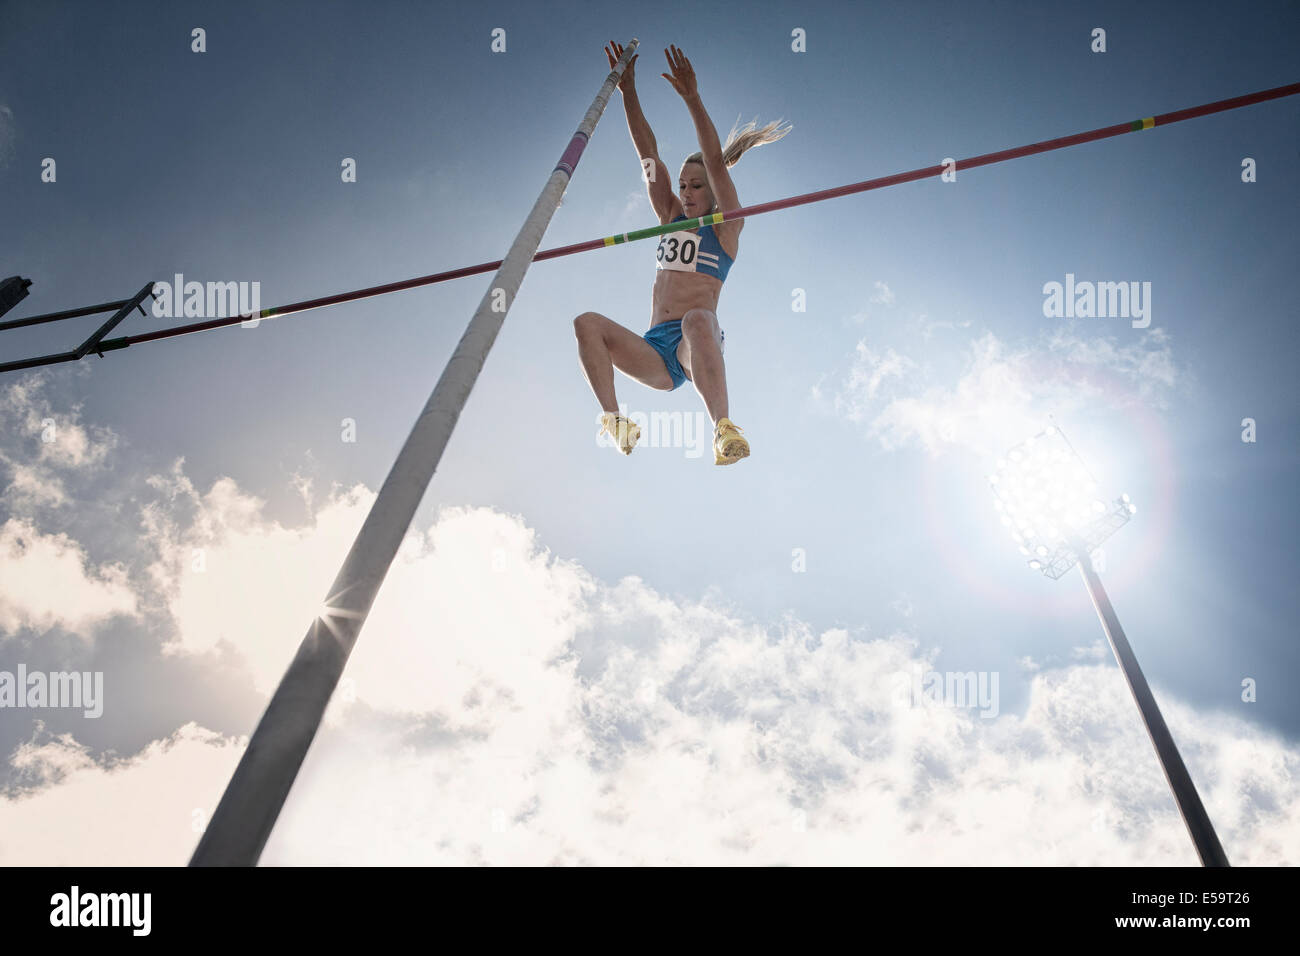 Pole vaulter clearing bar - Stock Image